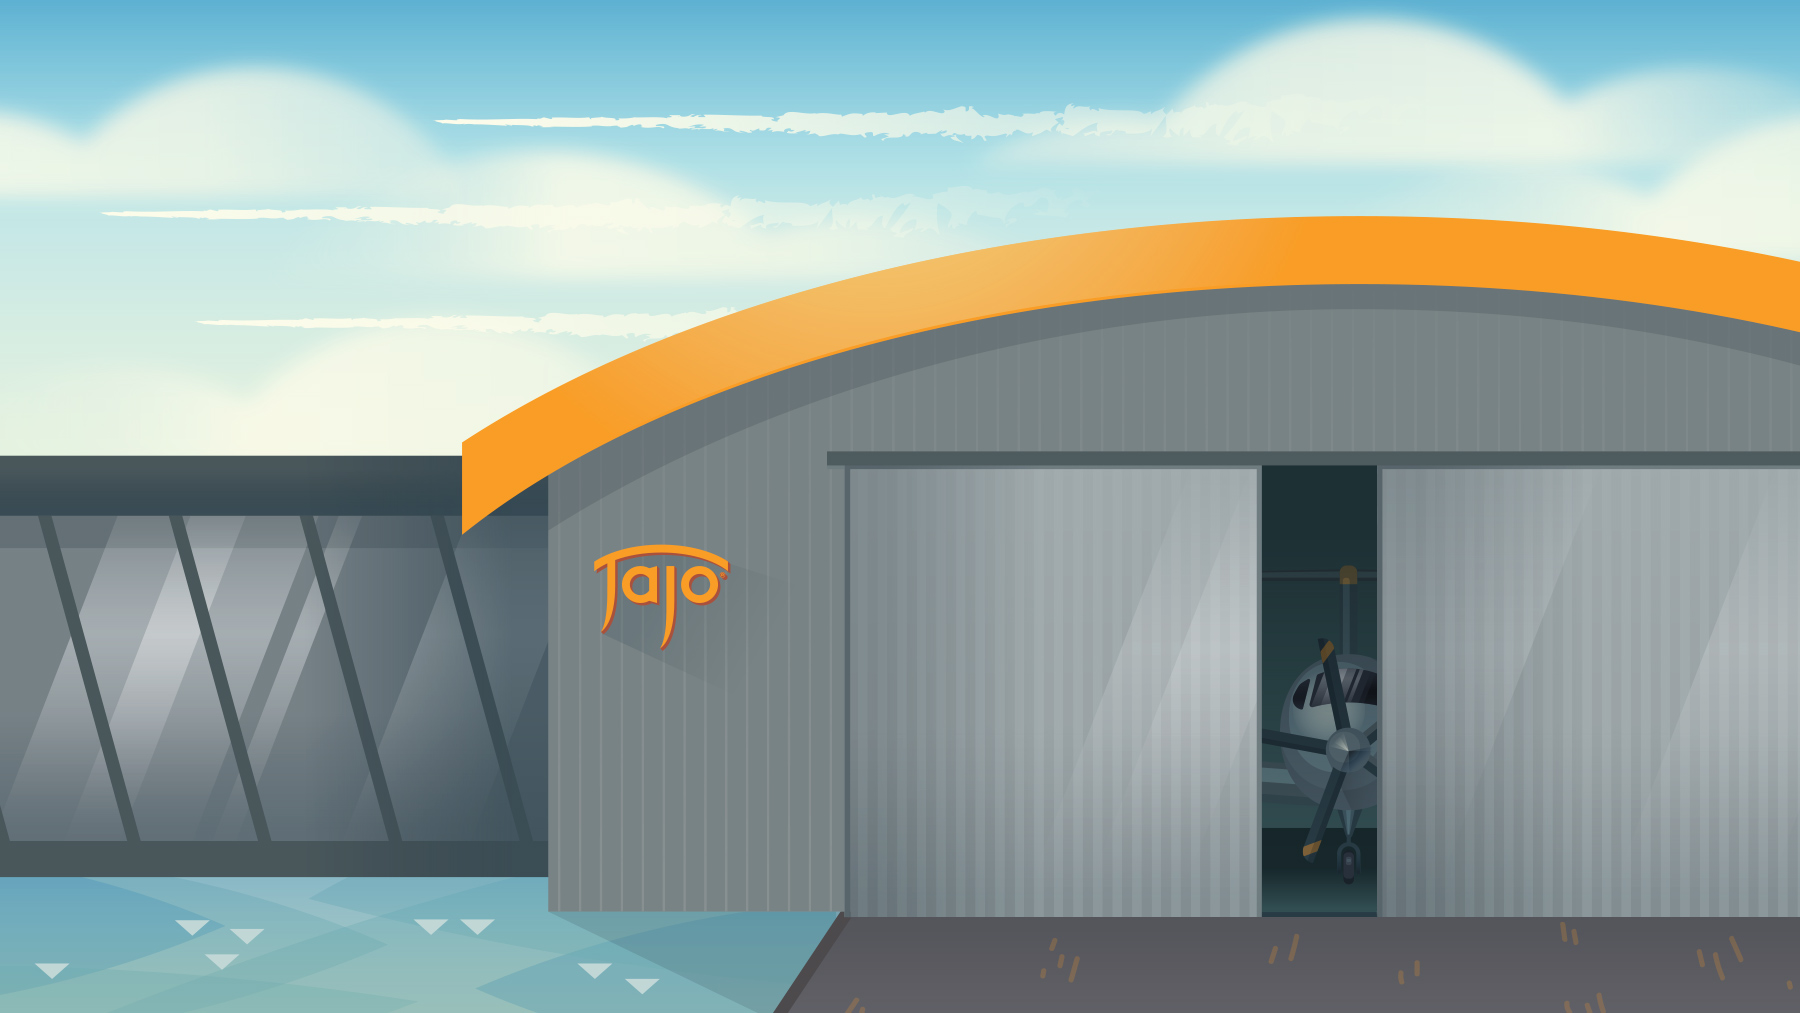 Illustrated Aviation Hanger with Jajo Logo